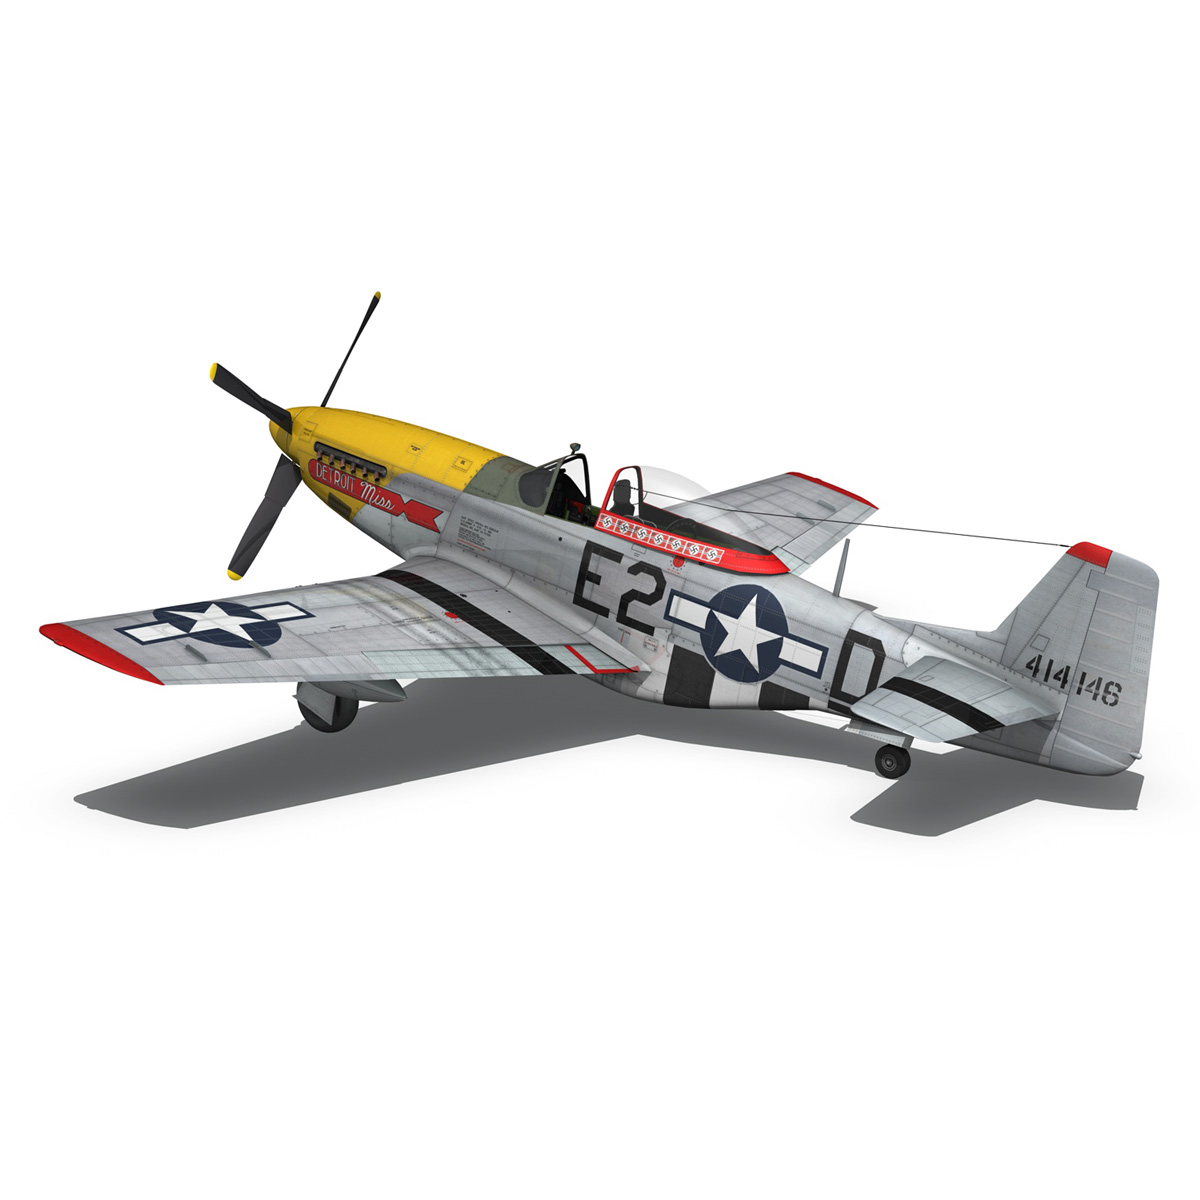 north american p-51d – mustang – detroit miss 3d model 3ds fbx c4d lwo obj 267603